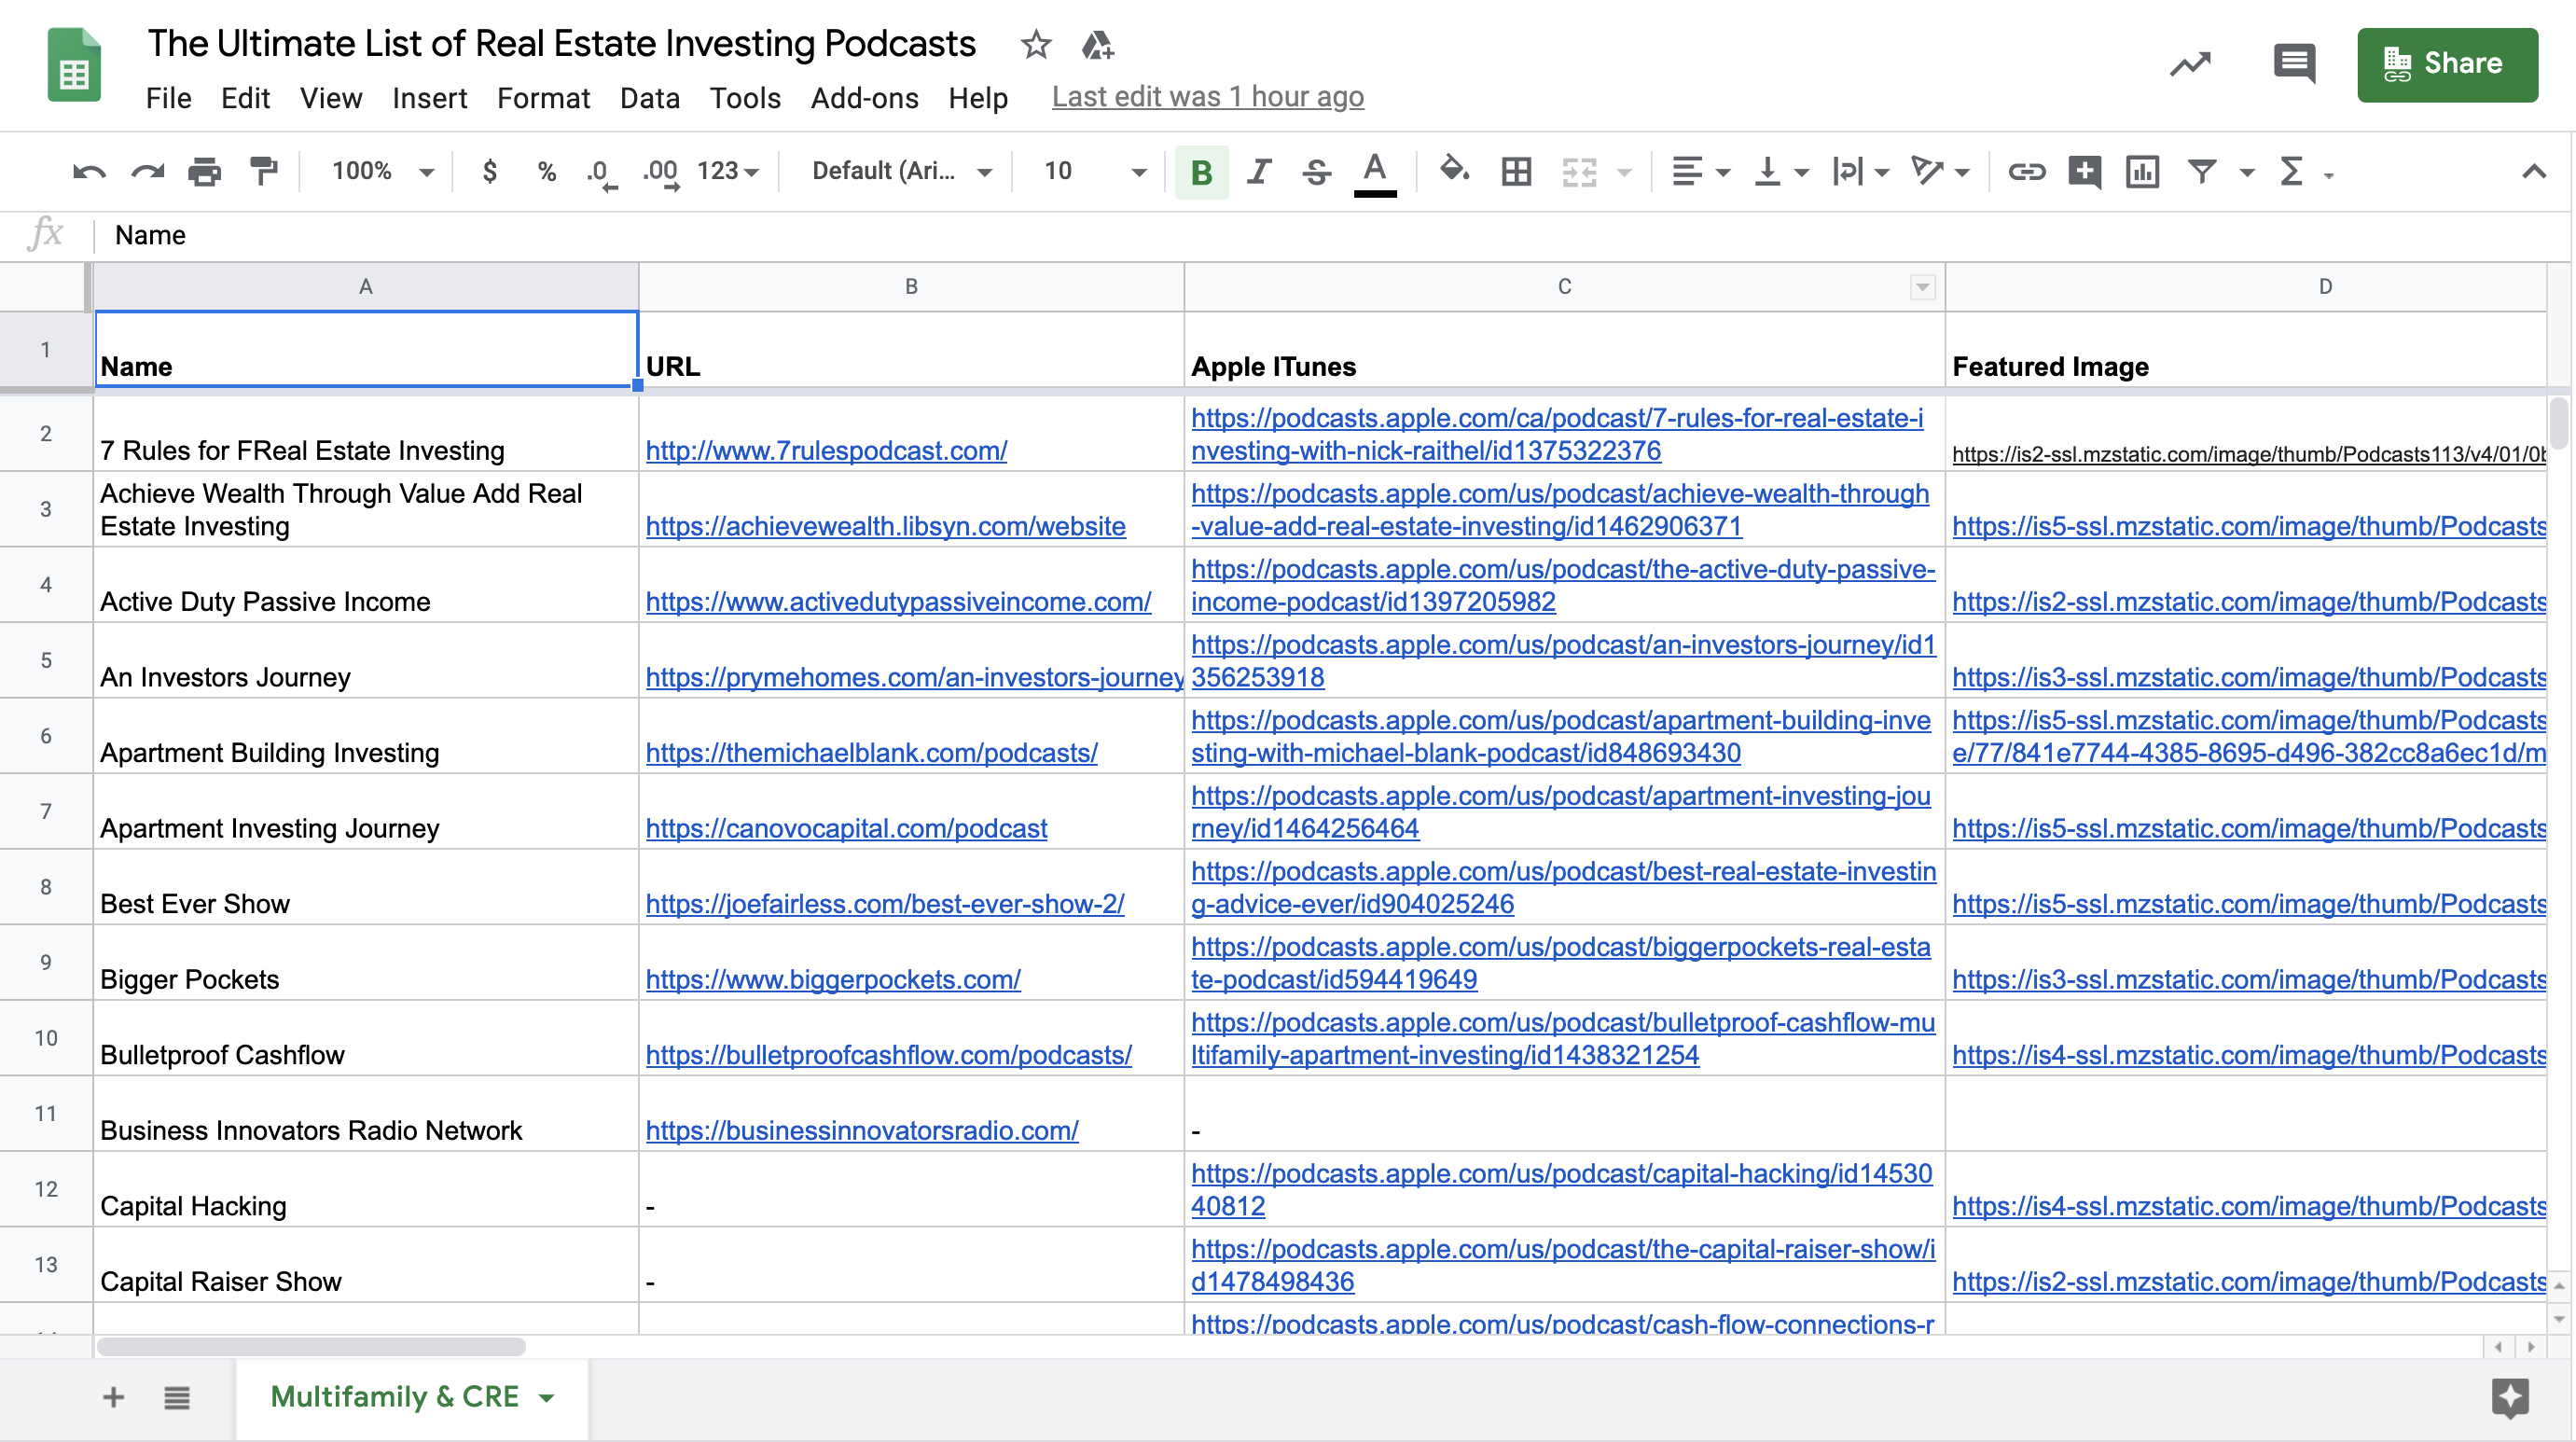 The Ultimate List of Real Estate Investing Podcasts Spreadsheet